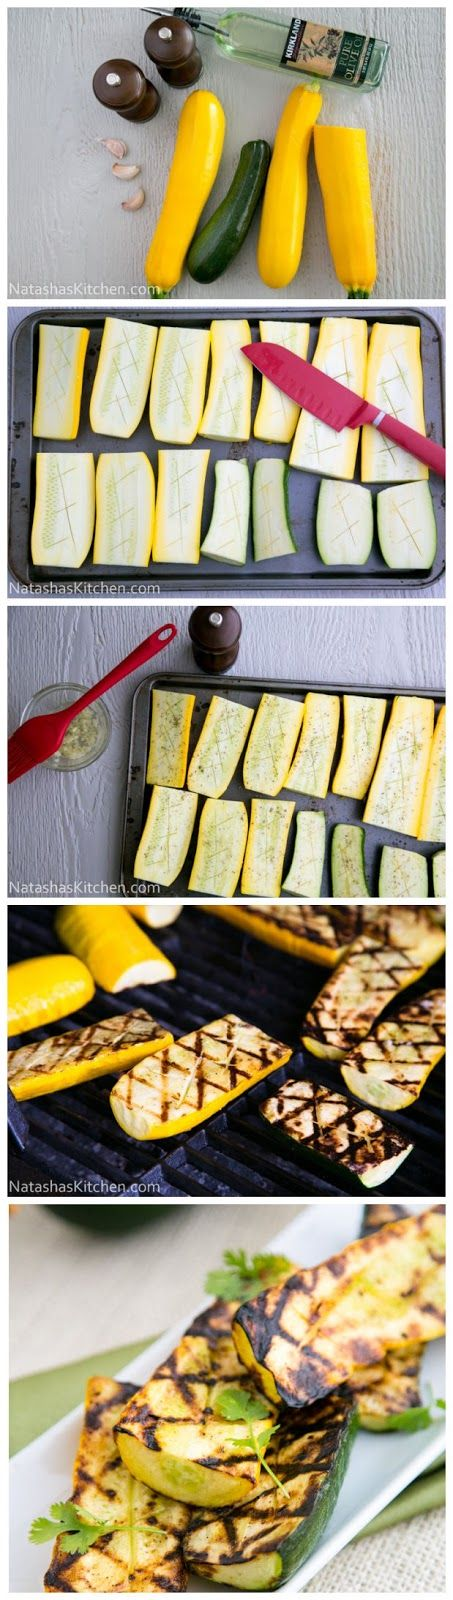 Proved and Approved: Grilled Garlic Zucchini. My carnivore friends loved them, didn't use the oil, and less garlic.